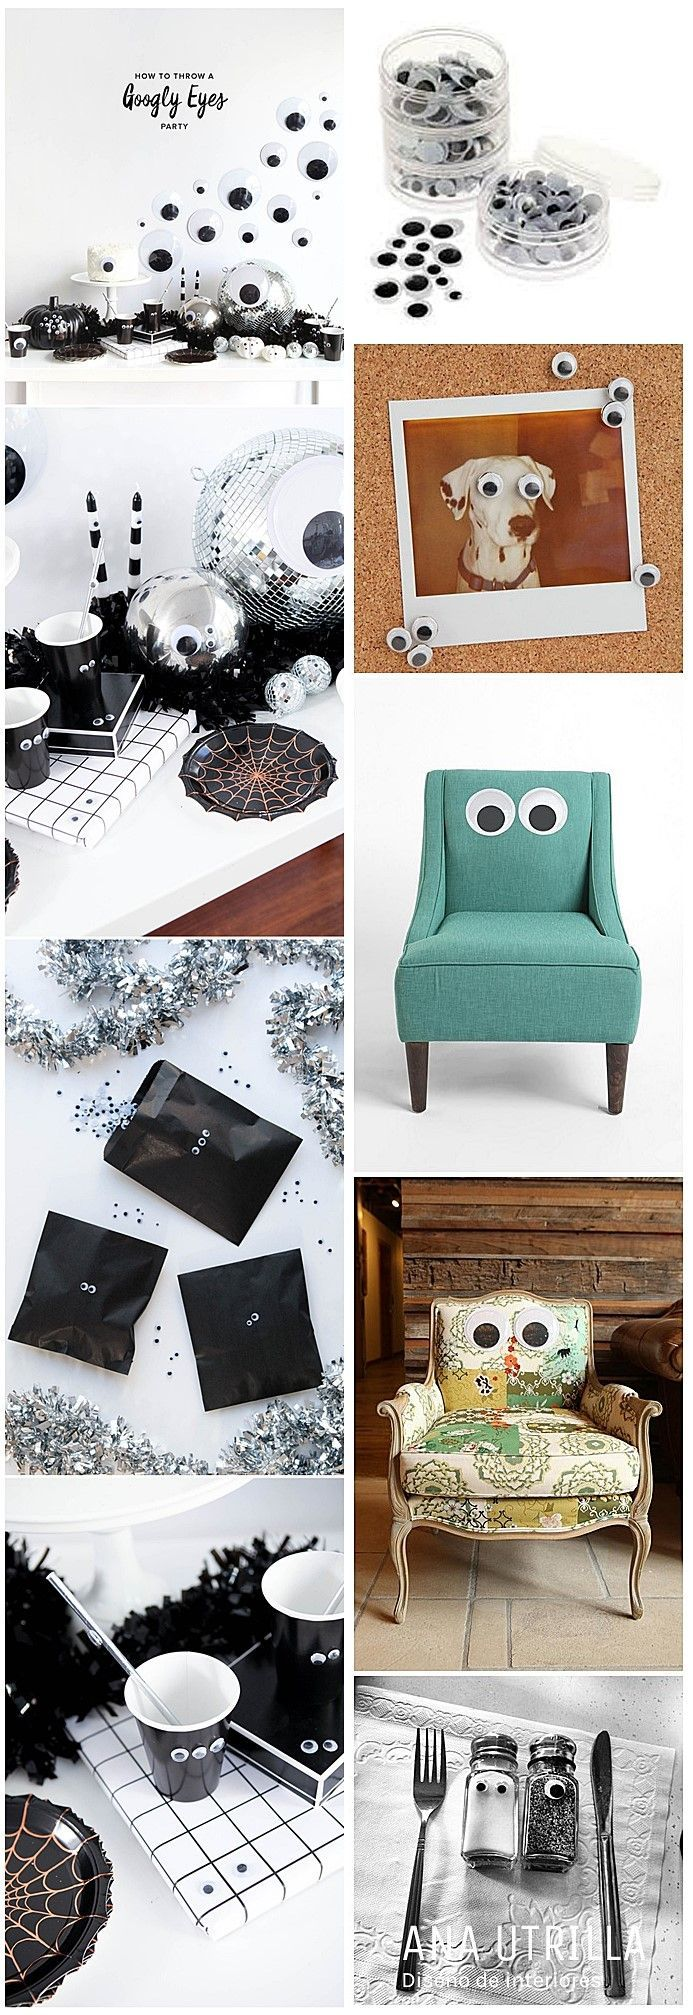 Googly eyes on furniture partty halloween. Decoración para halloween con divertidos y cómicos ojos @Utrillanais